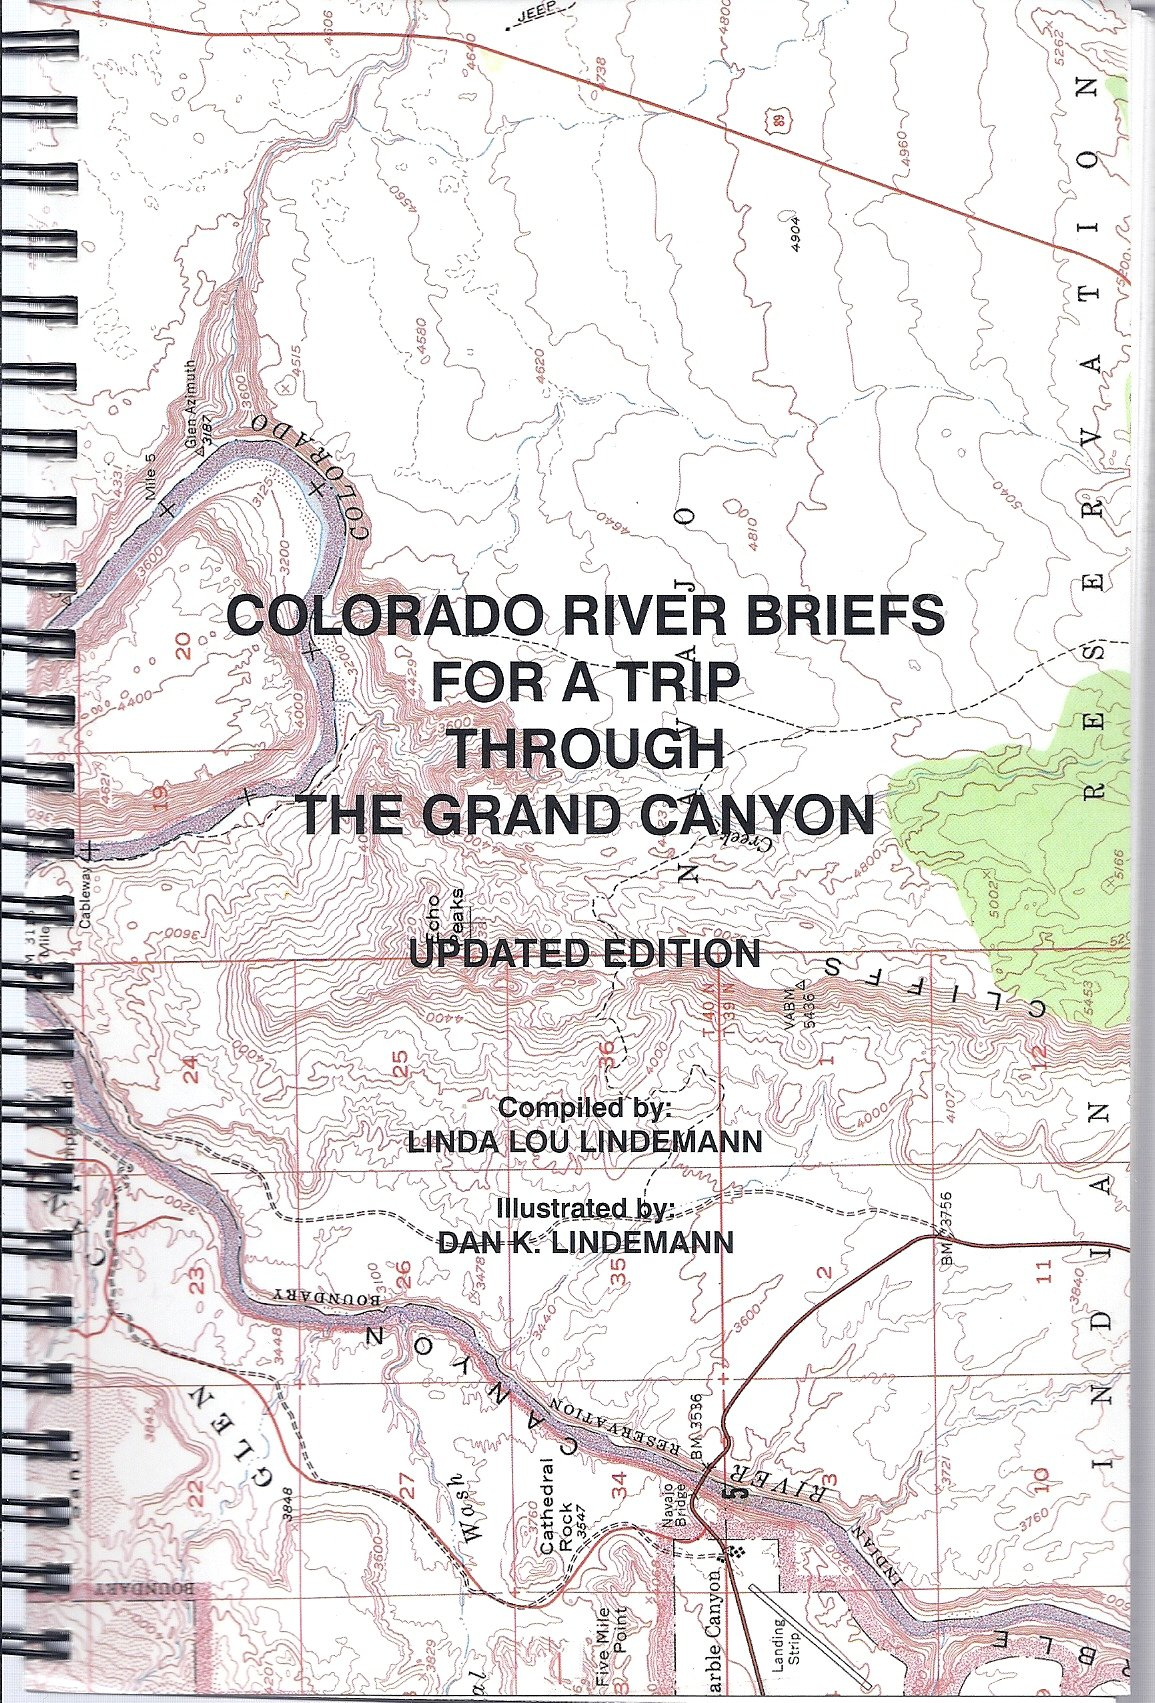 Colorado River Briefs for a Trip Through the Grand Canyon (Updated Edition), Linda Lou Lindemann